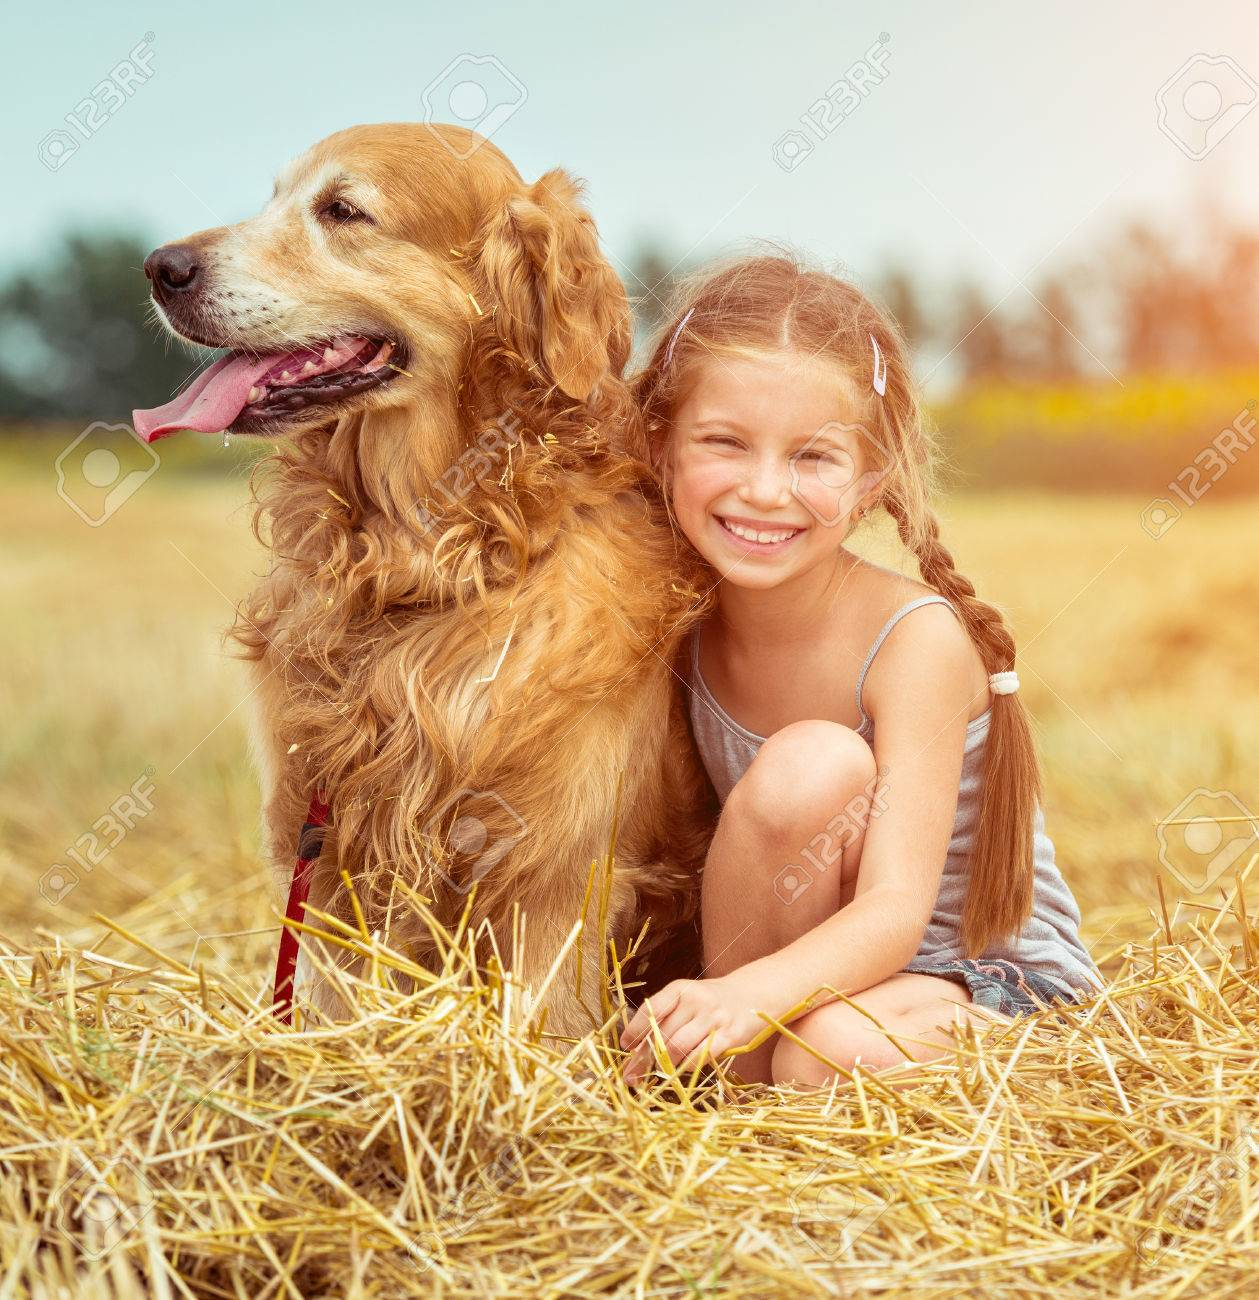 happy little girl with her dog - 36275383